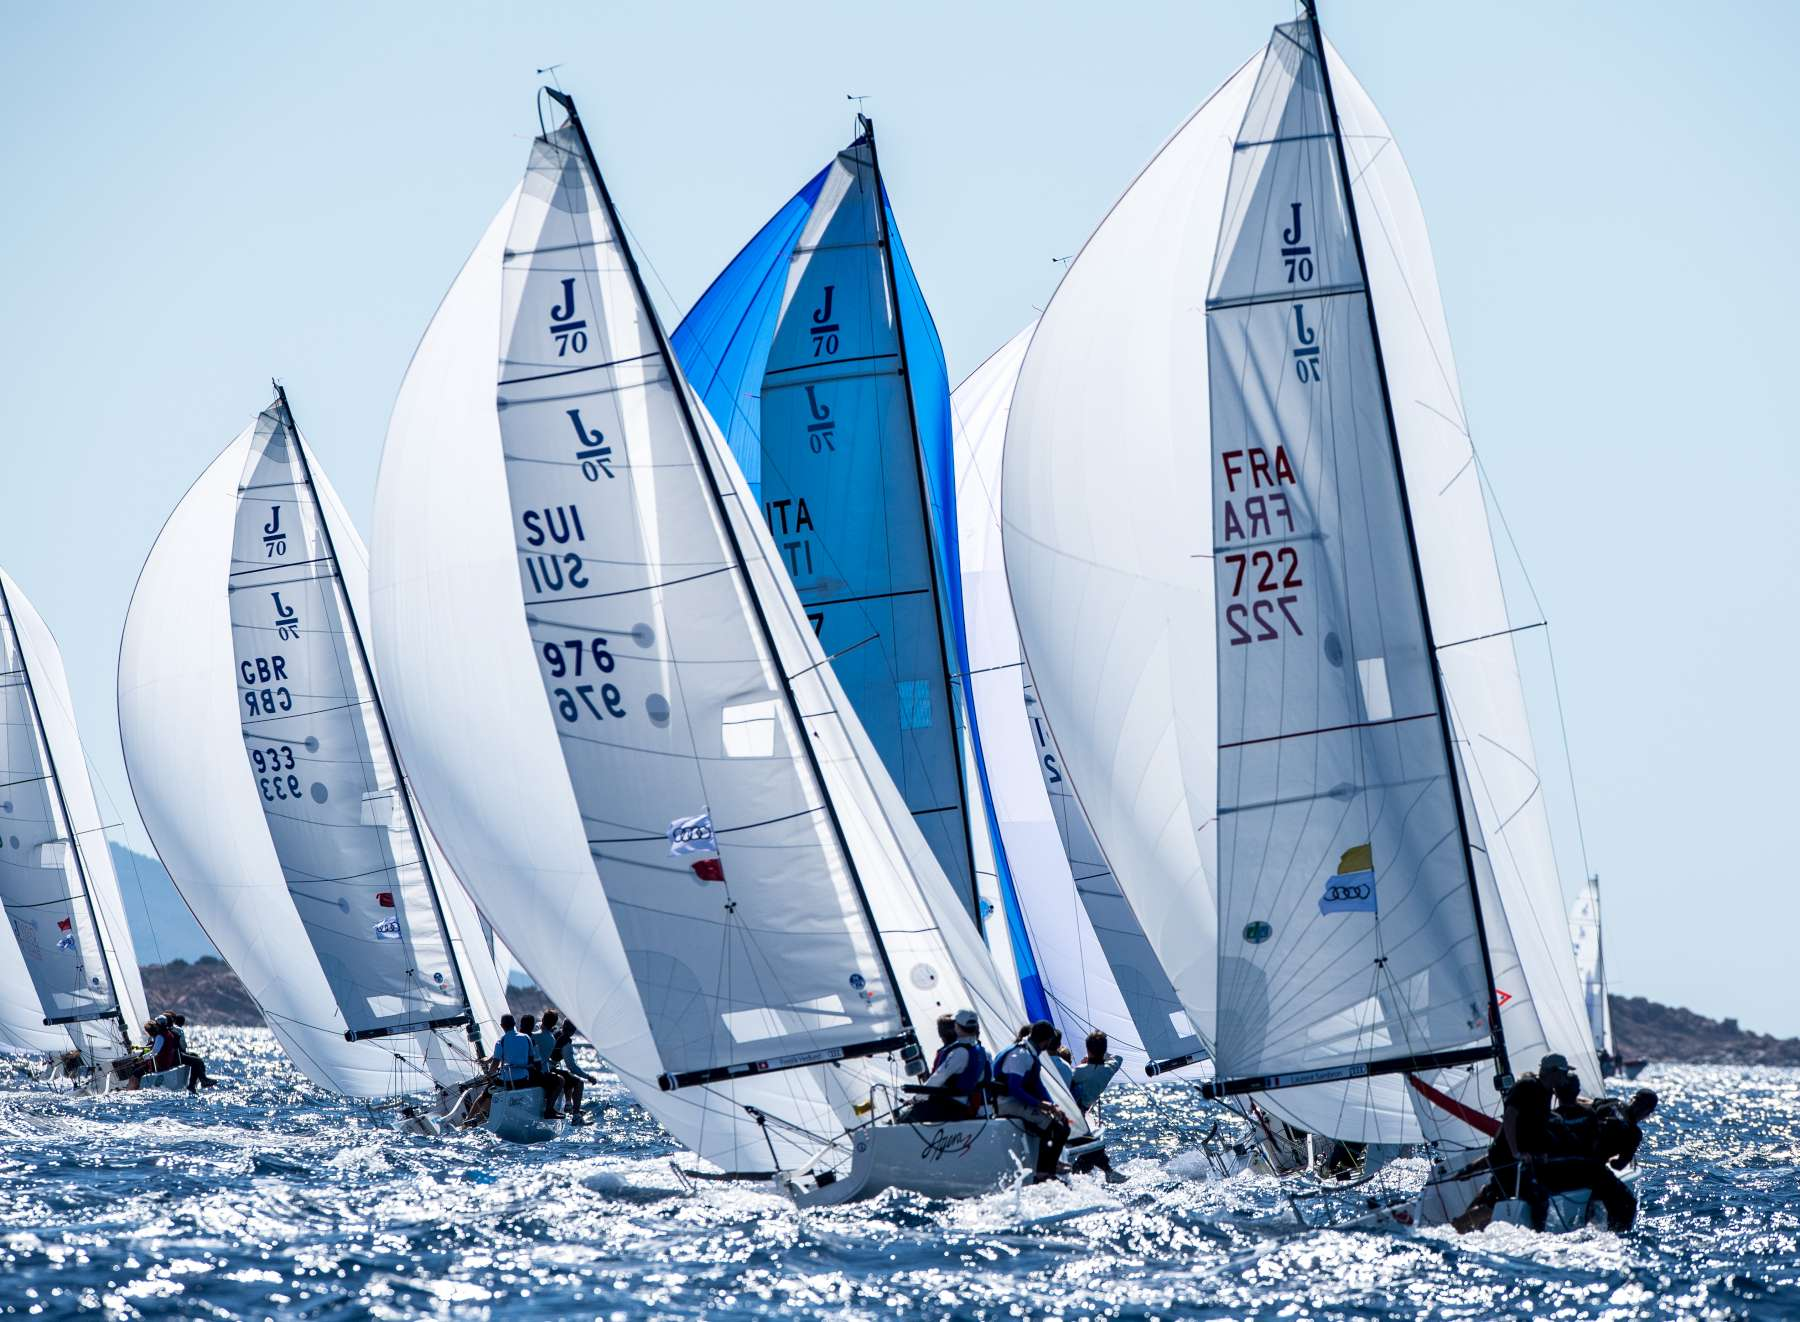 Audi J/70 World Championship in the December episode of The World Sailing Show - NEWS - Yacht Club Costa Smeralda